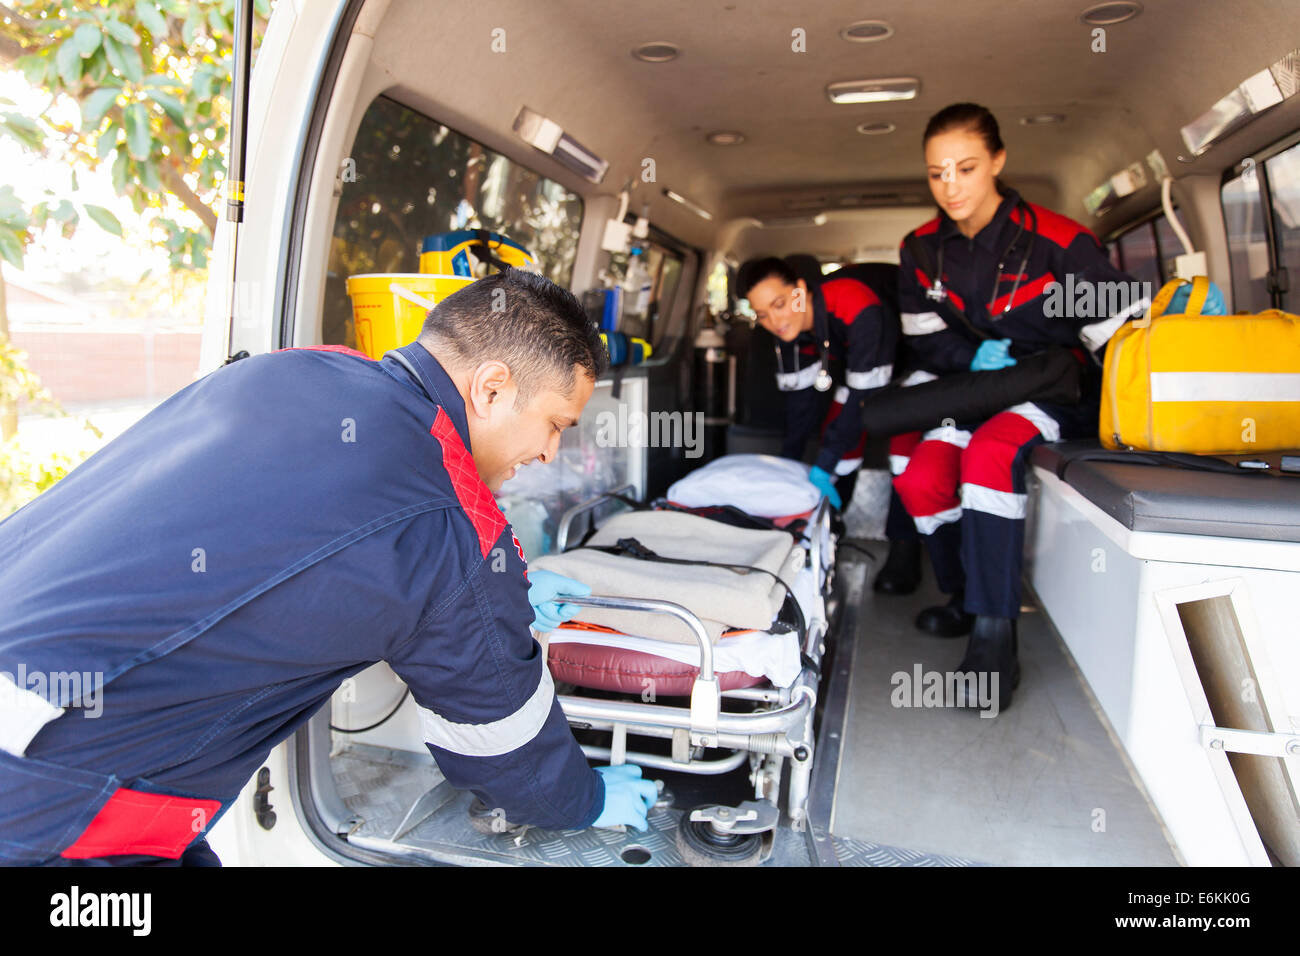 team paramedics taking stretcher out of an ambulance - Stock Image